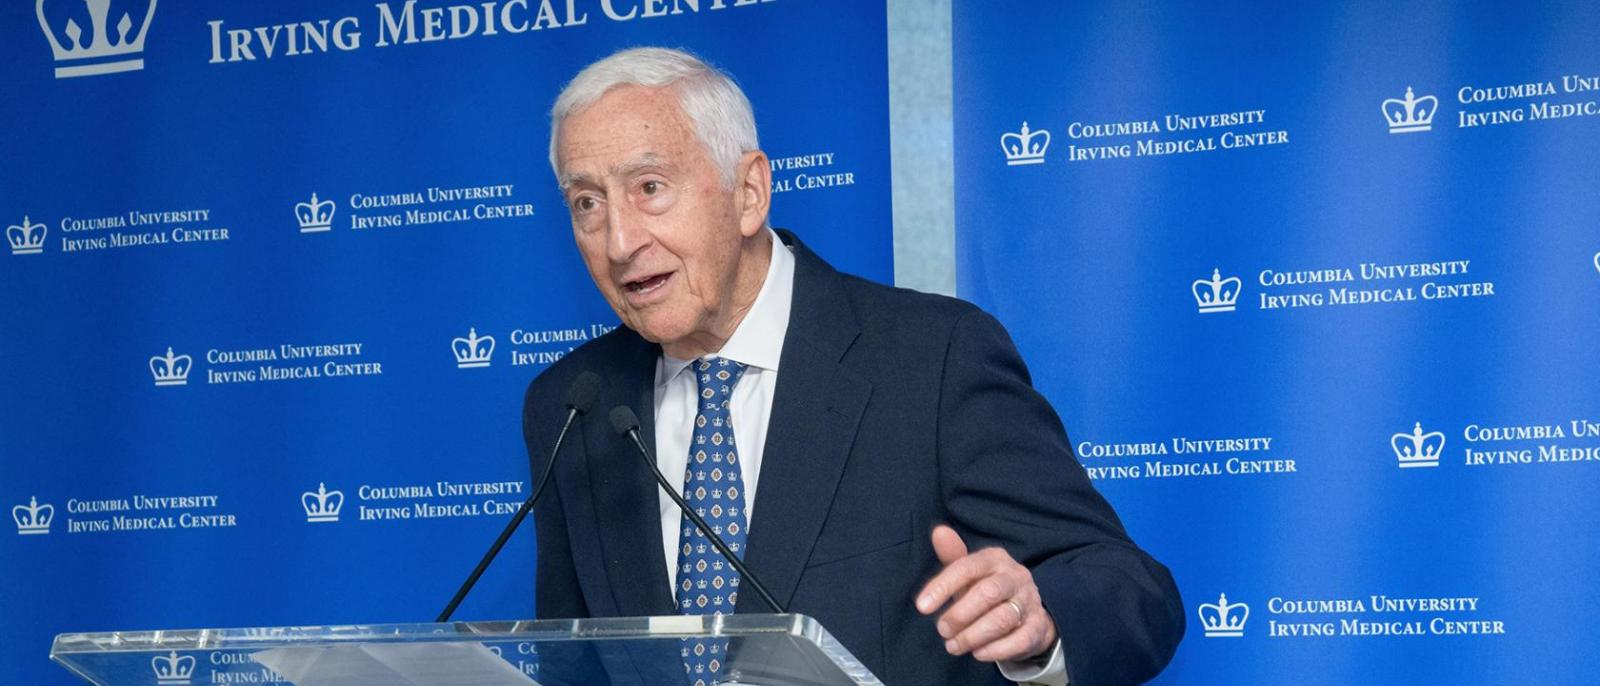 P. Roy Vagelos, MD, spoke during the 2018 ceremony of the Dr. Clyde and Helen Wu Award for International Understanding